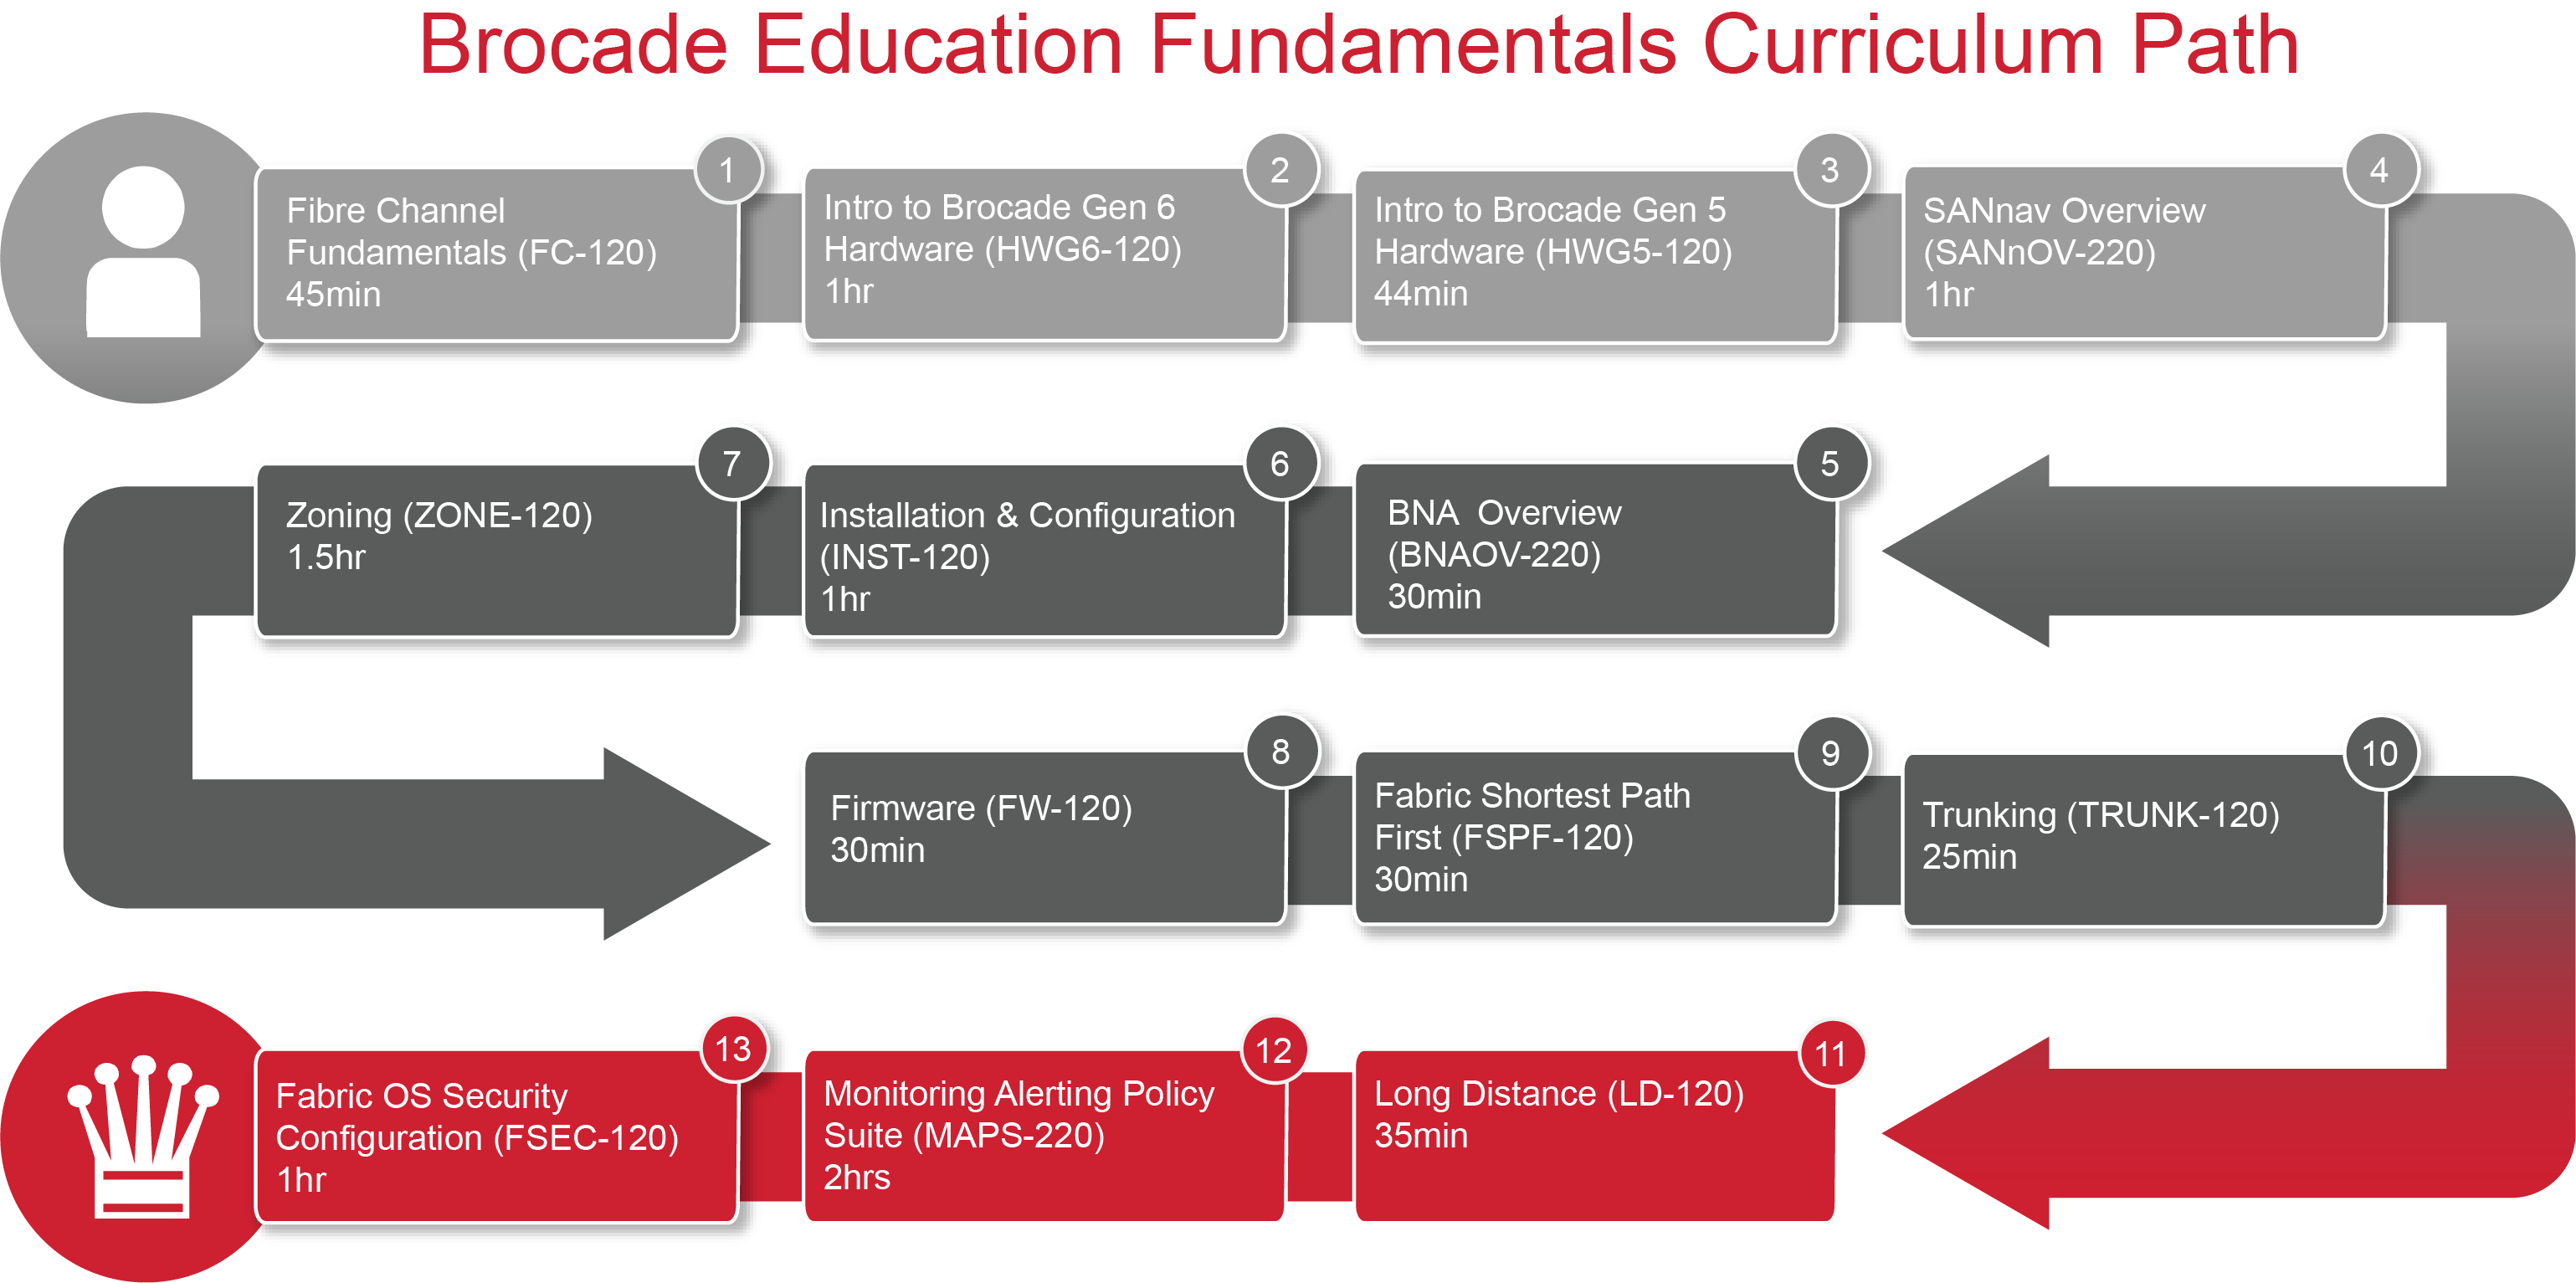 Brocade Education Fundamentals Curriculum Path Red B 050719.png